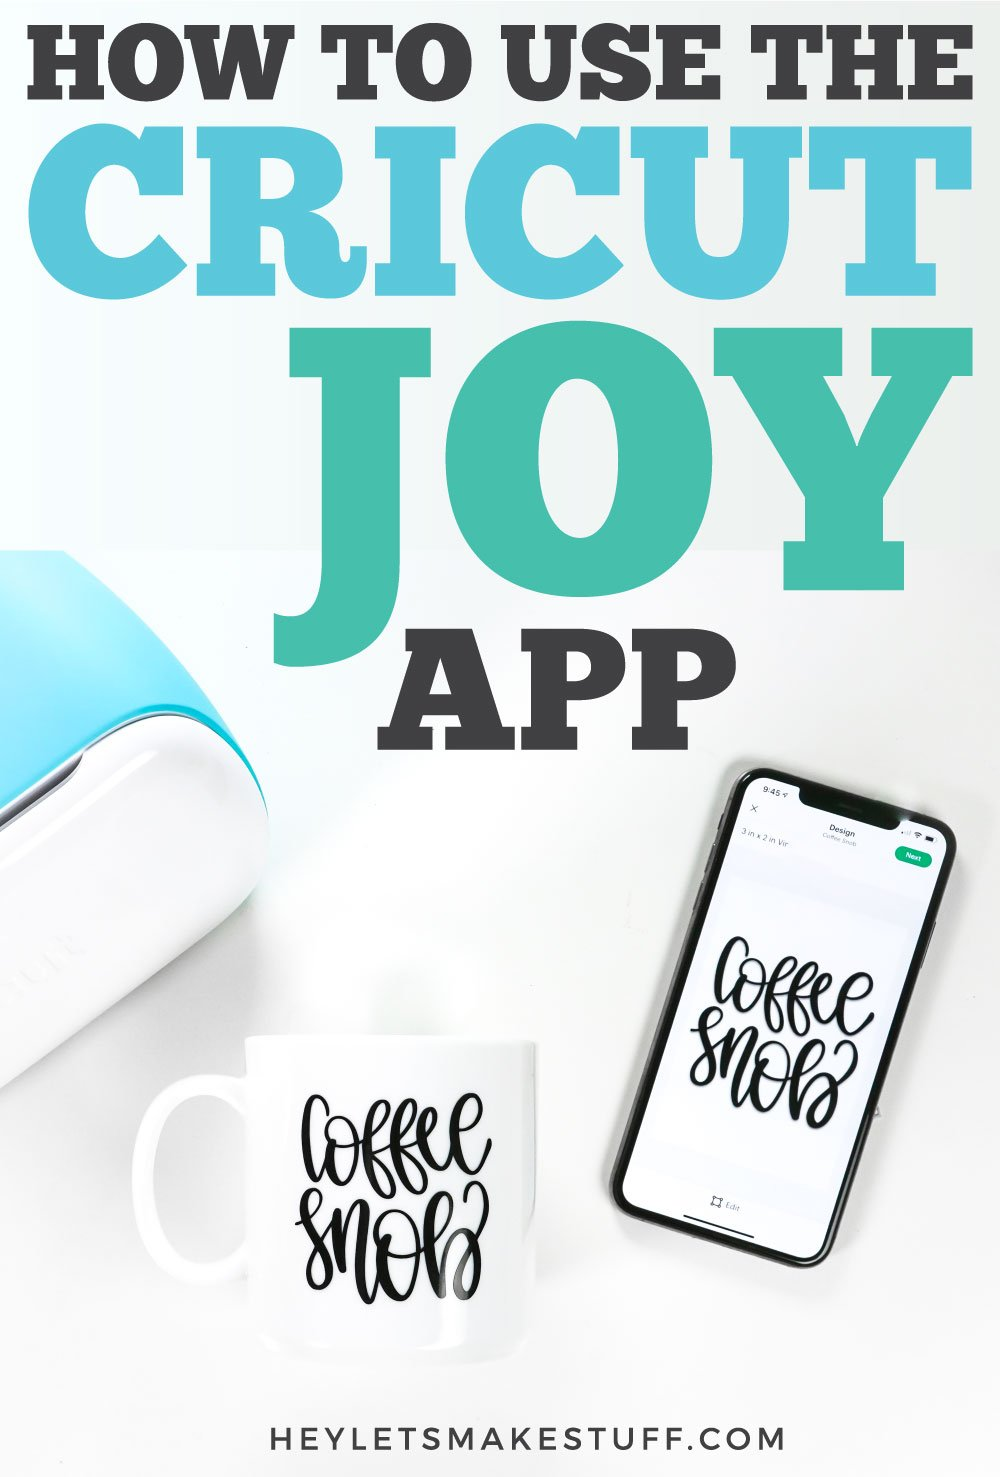 Cricut Joy App pin image